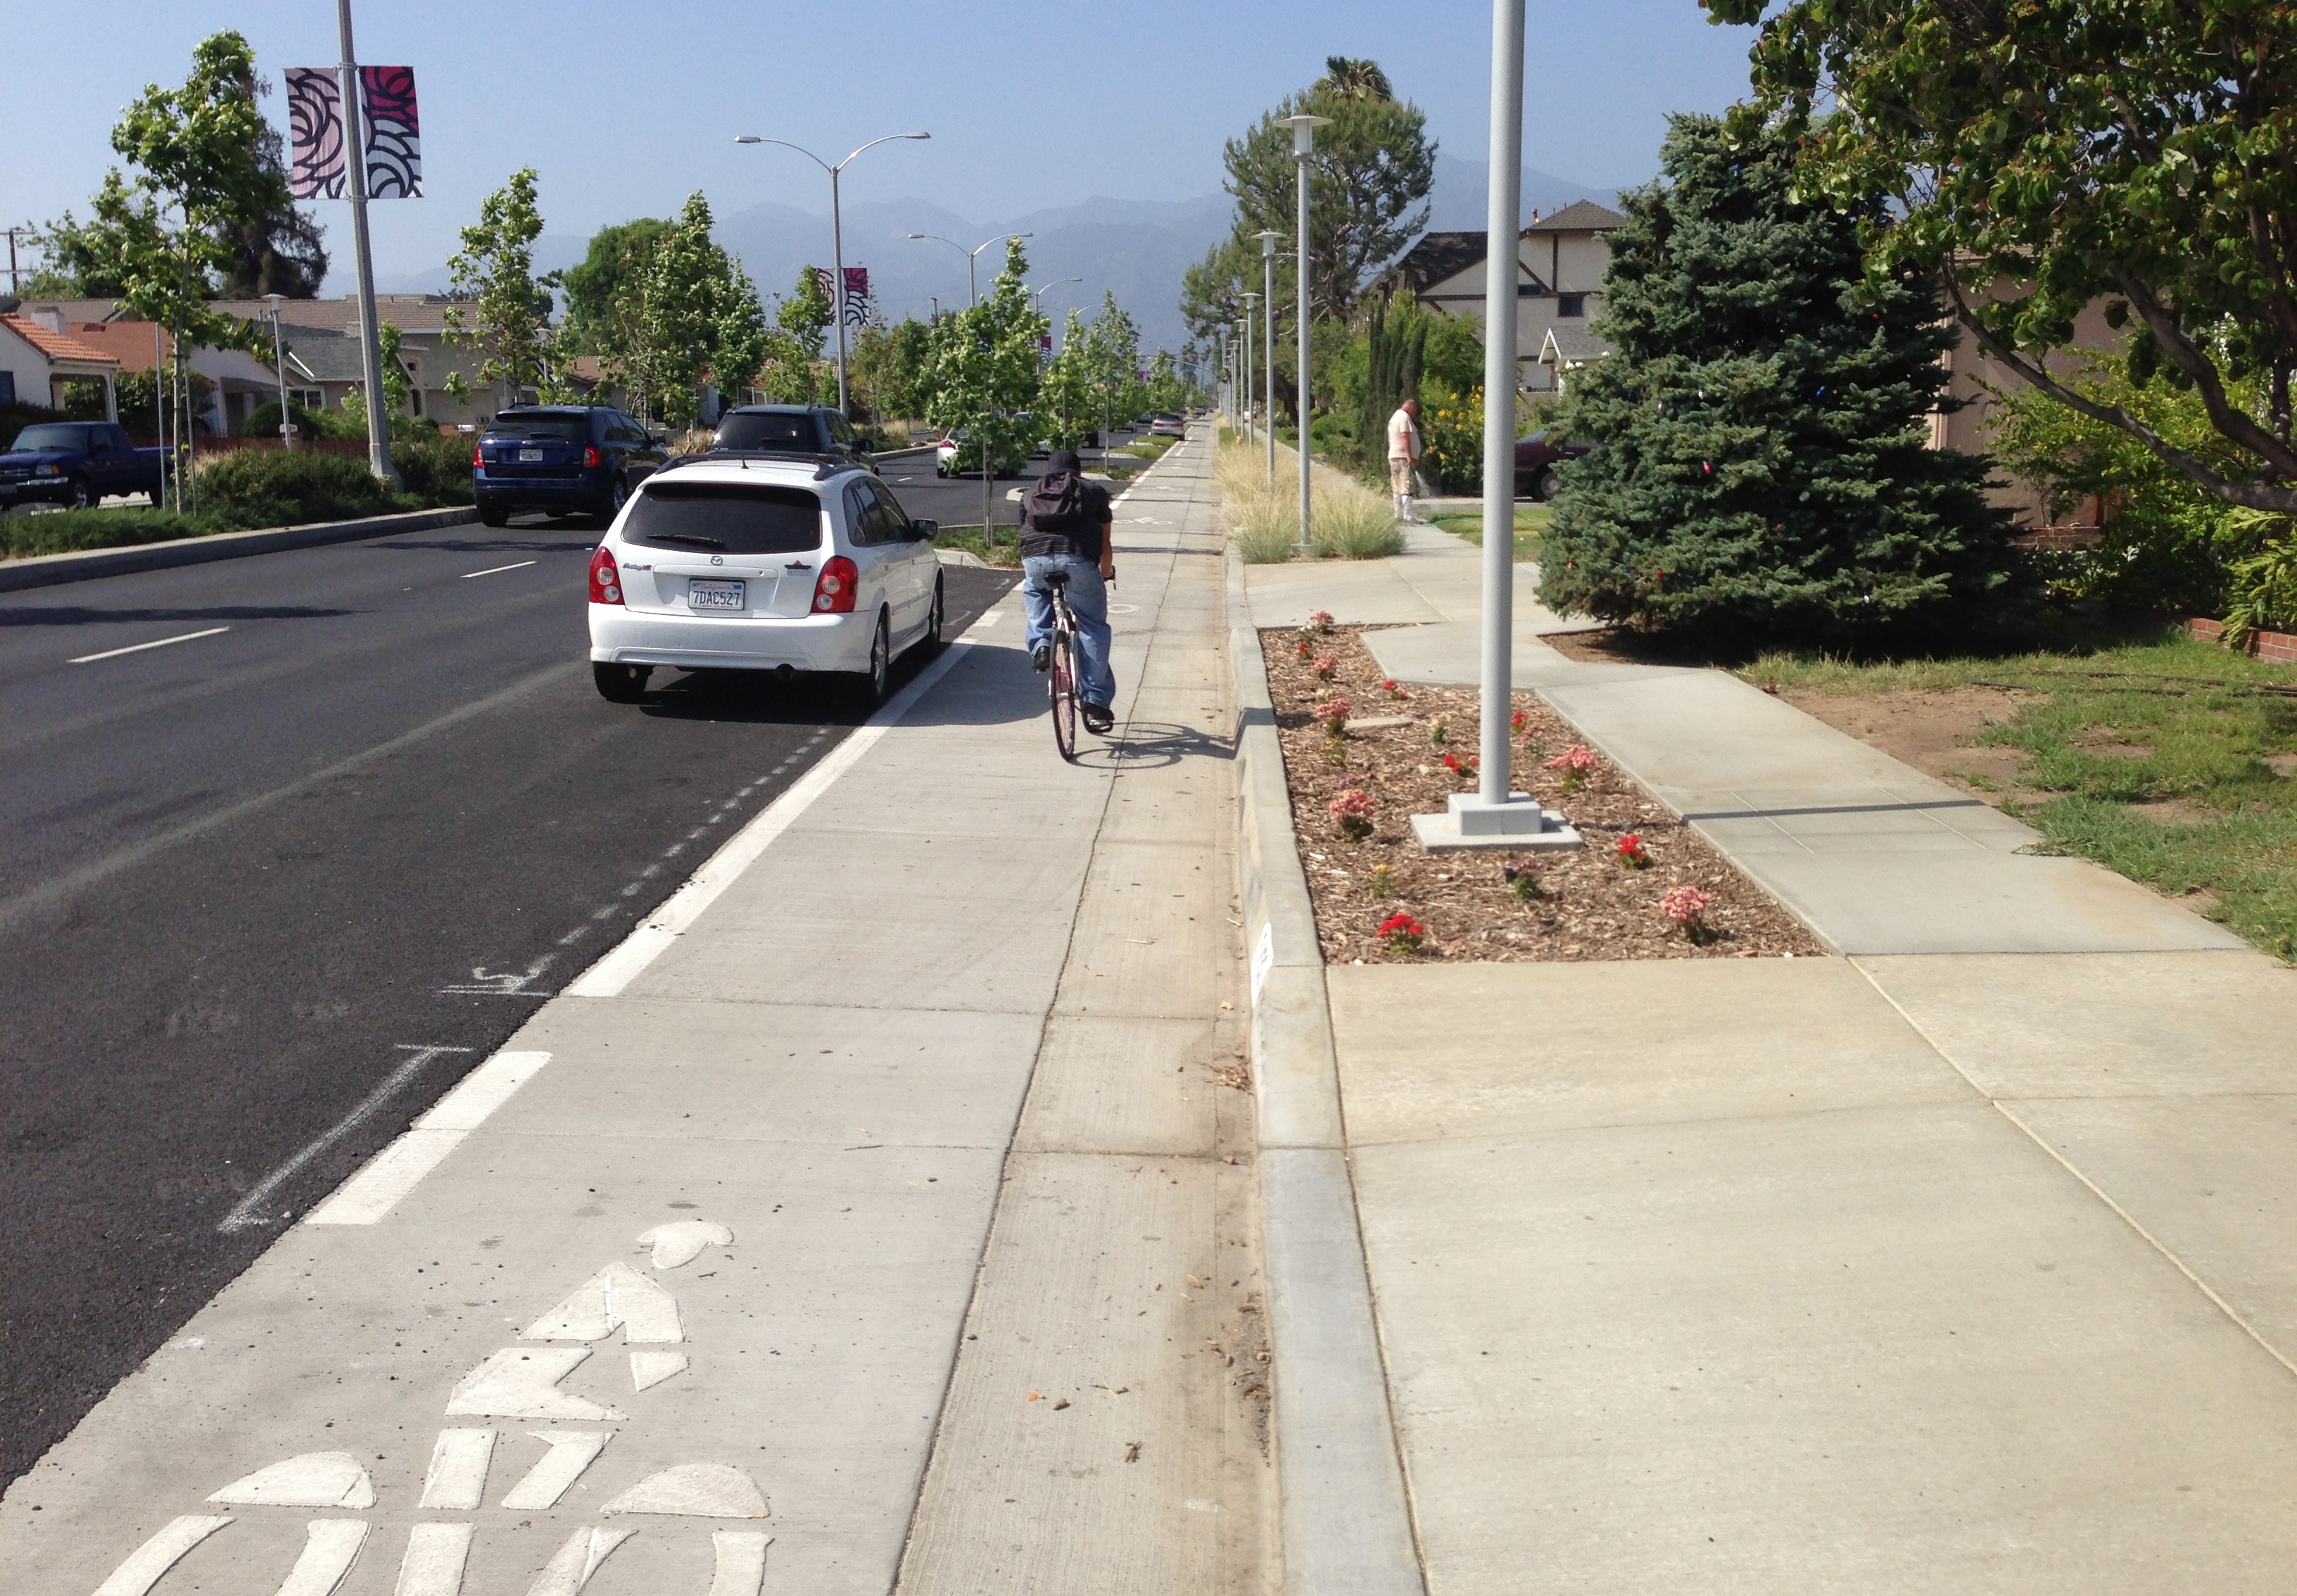 Another shot of the driveway stencil and the parking-protected bikeway.